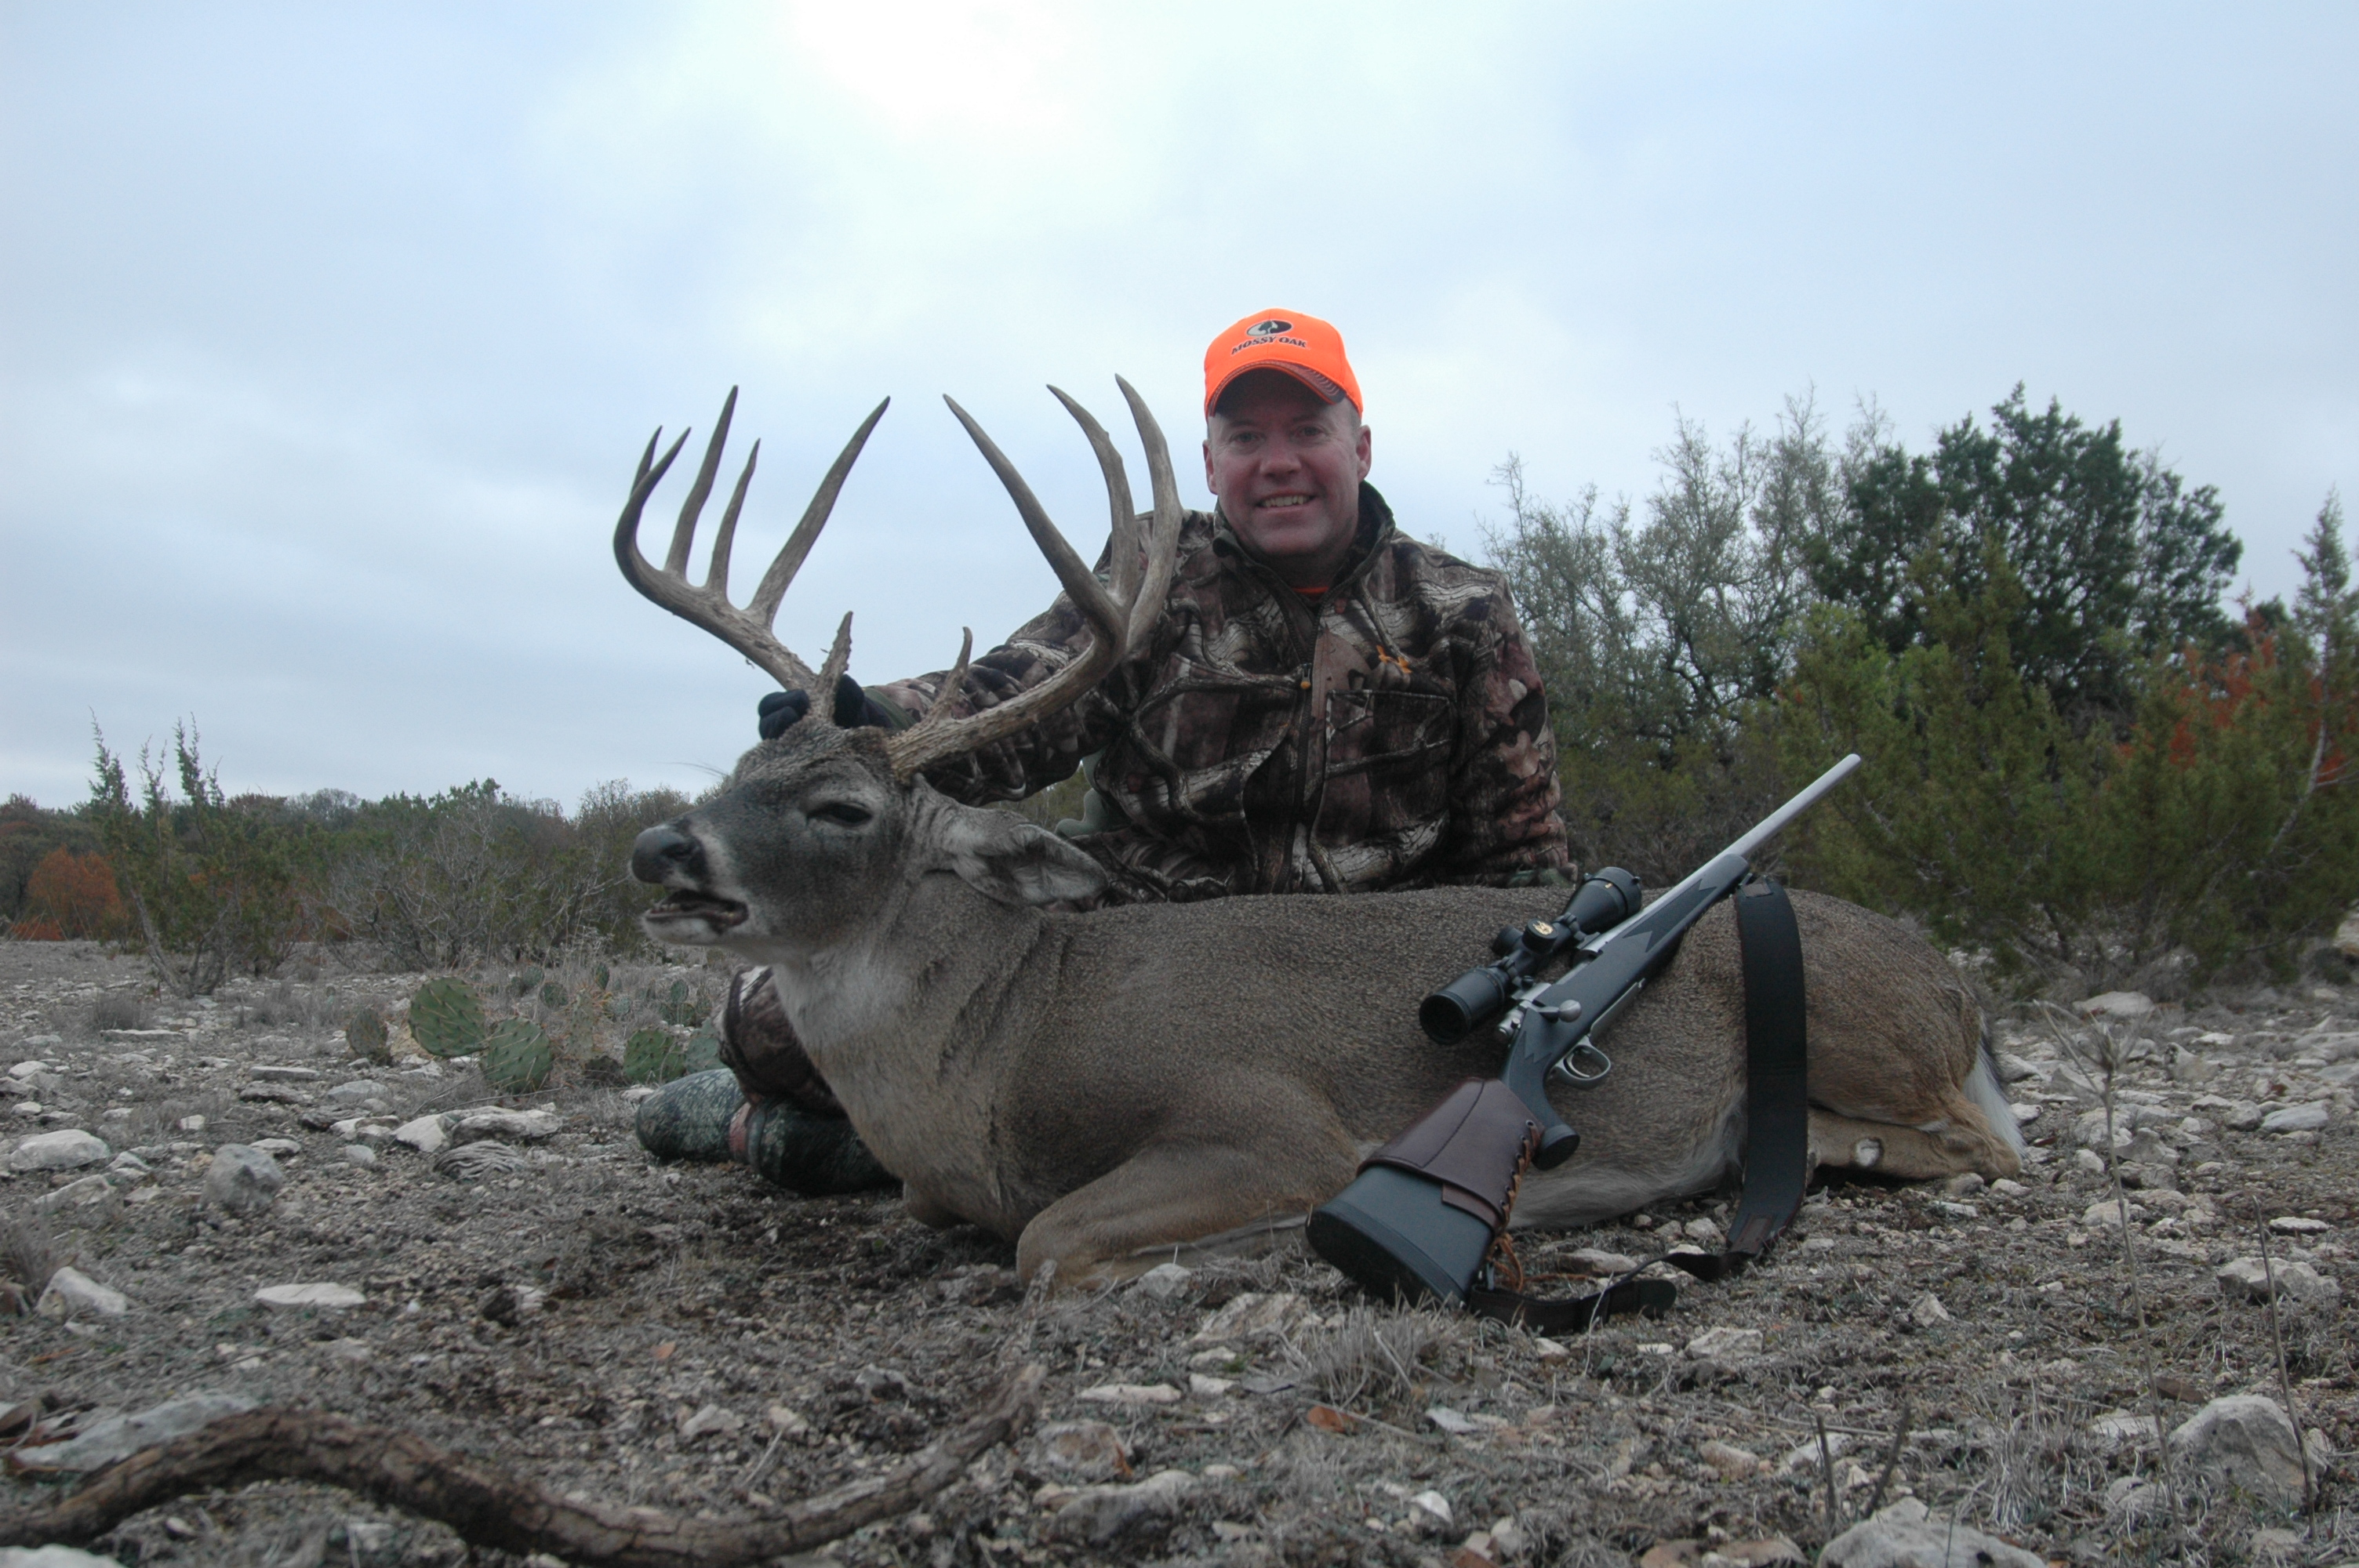 D&DH Editor Dan Schmidt is all smiles after taking this 6-1/2-year-old 10-pointer at the free-ranging Vatoville Outdoors ranch near Sonora, Texas.